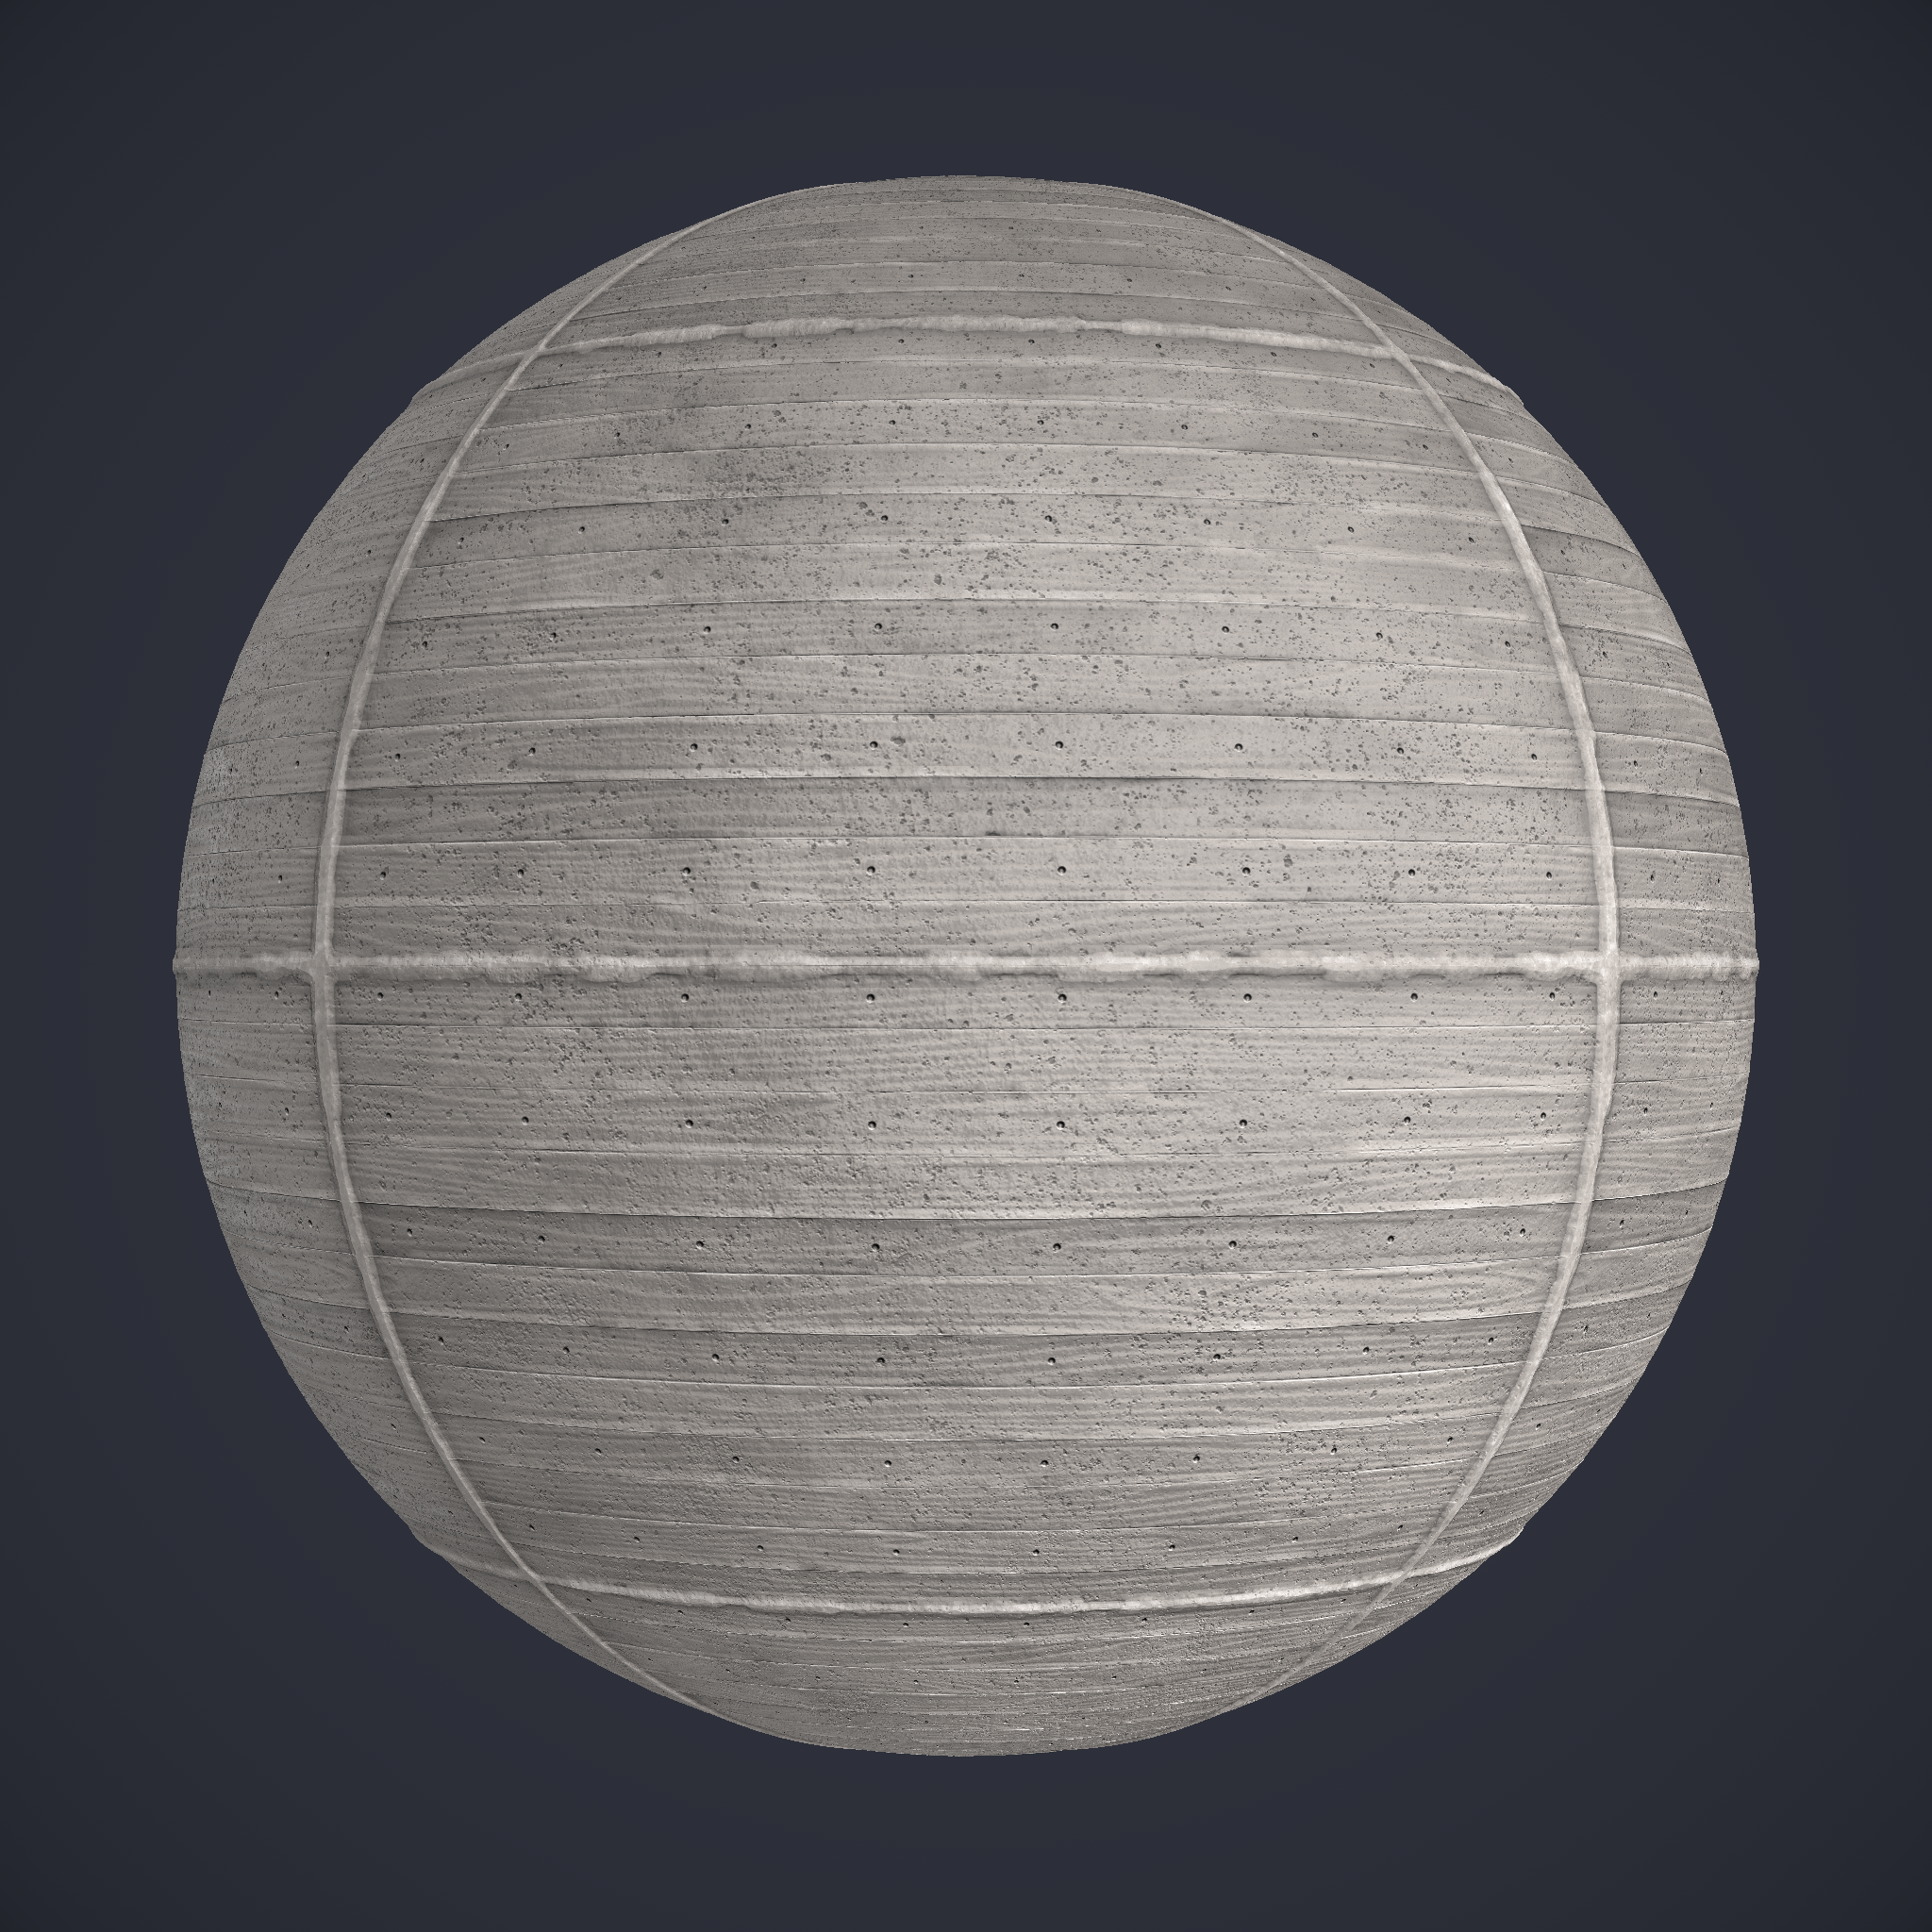 concrete_wall_14_render.png